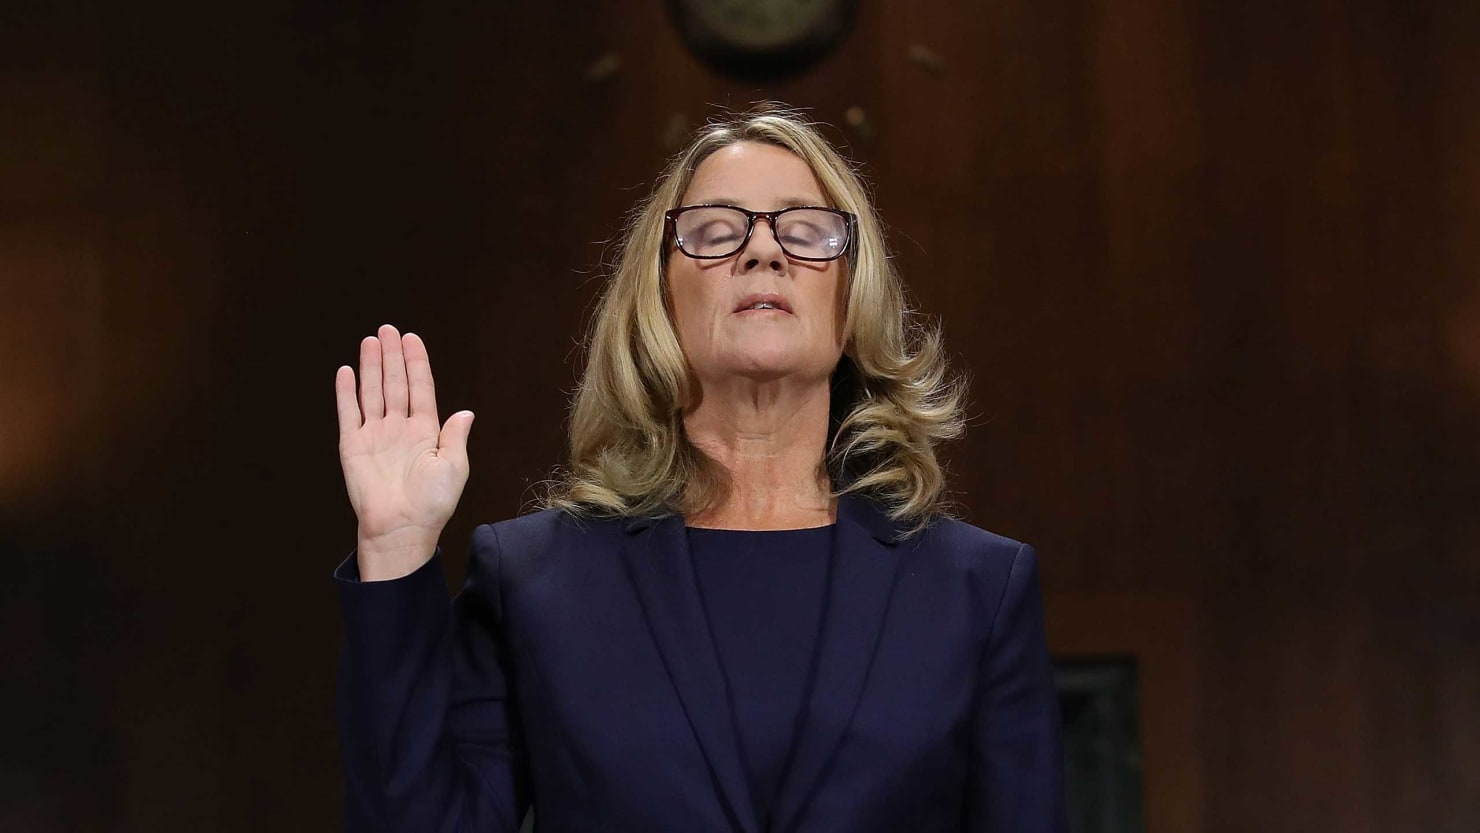 Dr. Christine Blasey Ford being sworn in during the Kavanaugh hearings.